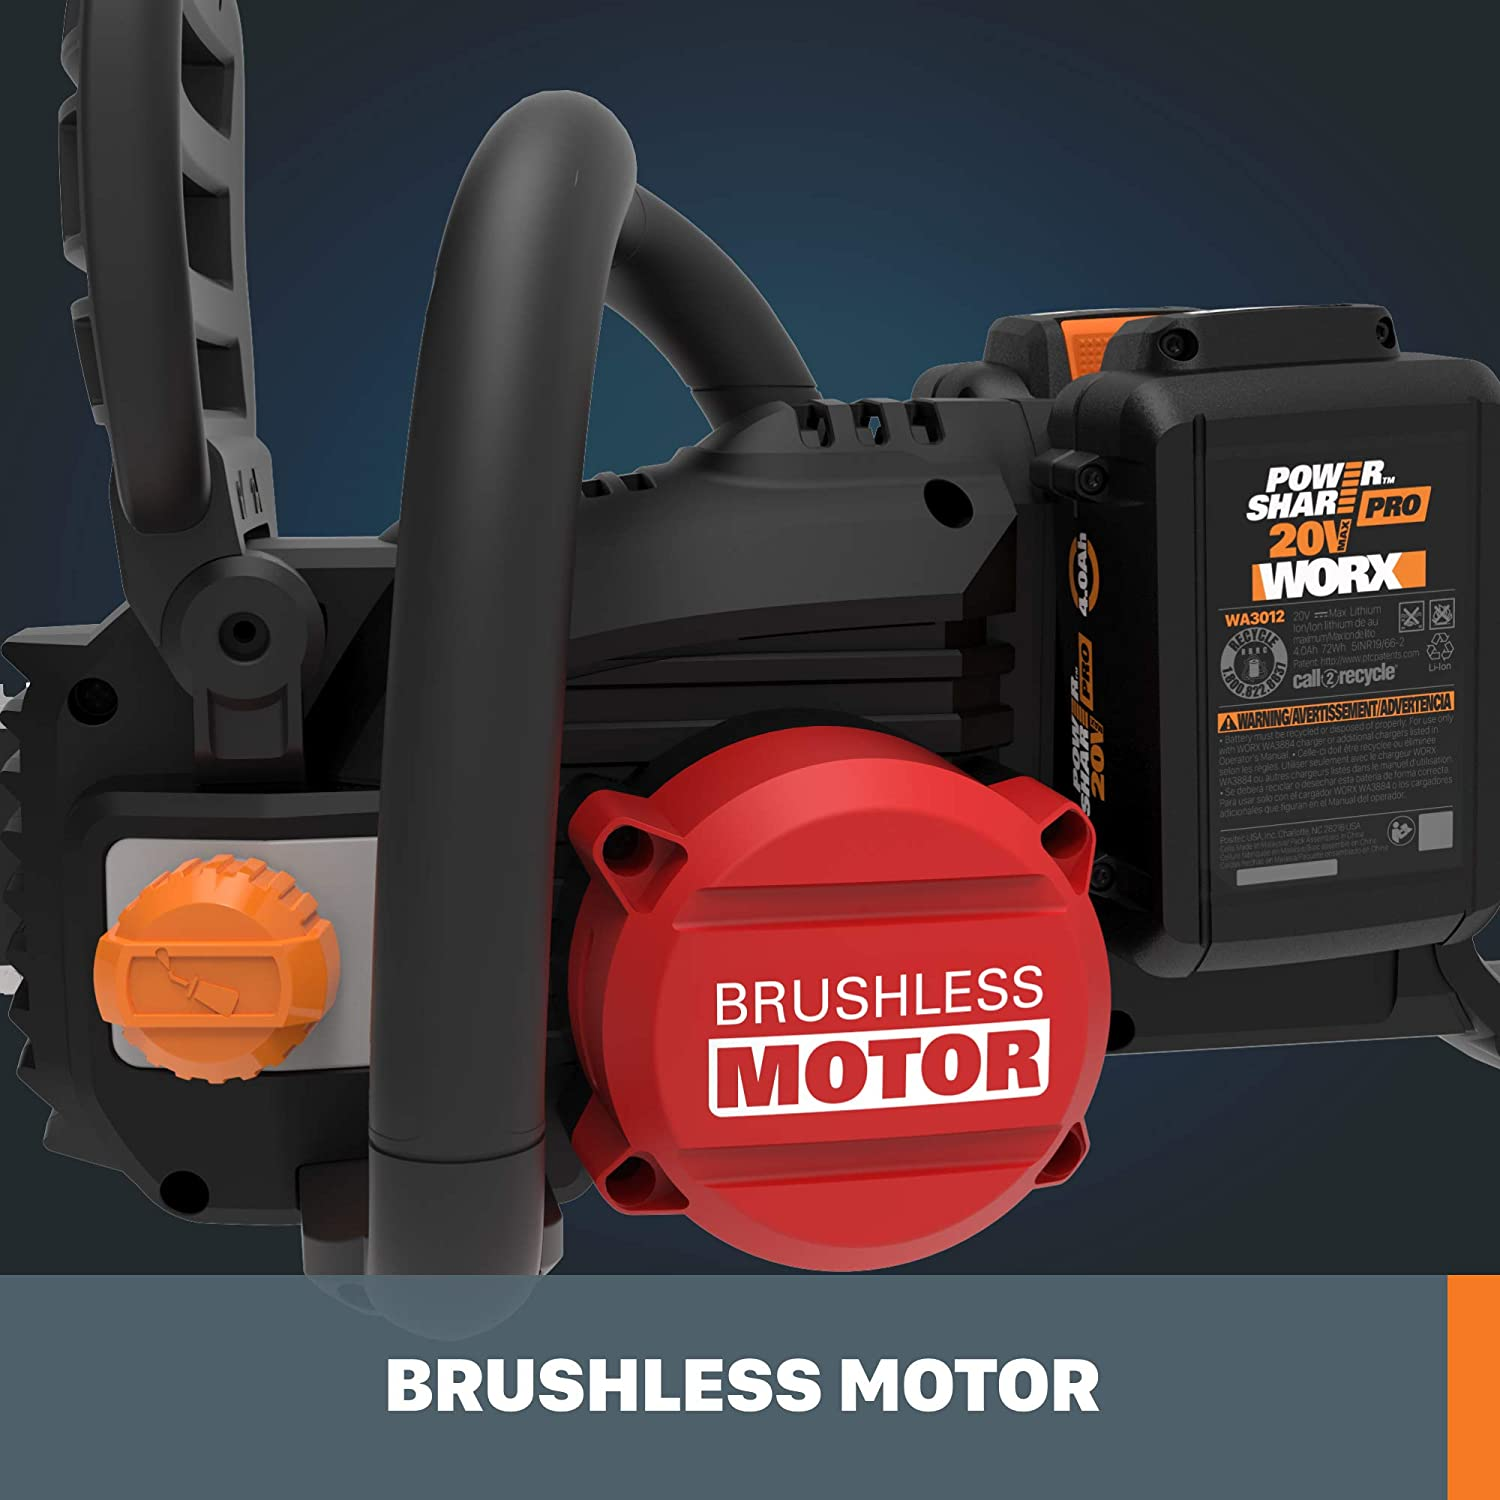 ghdonat.com Battery and Charger Included Worx Nitro WG385 Power ...